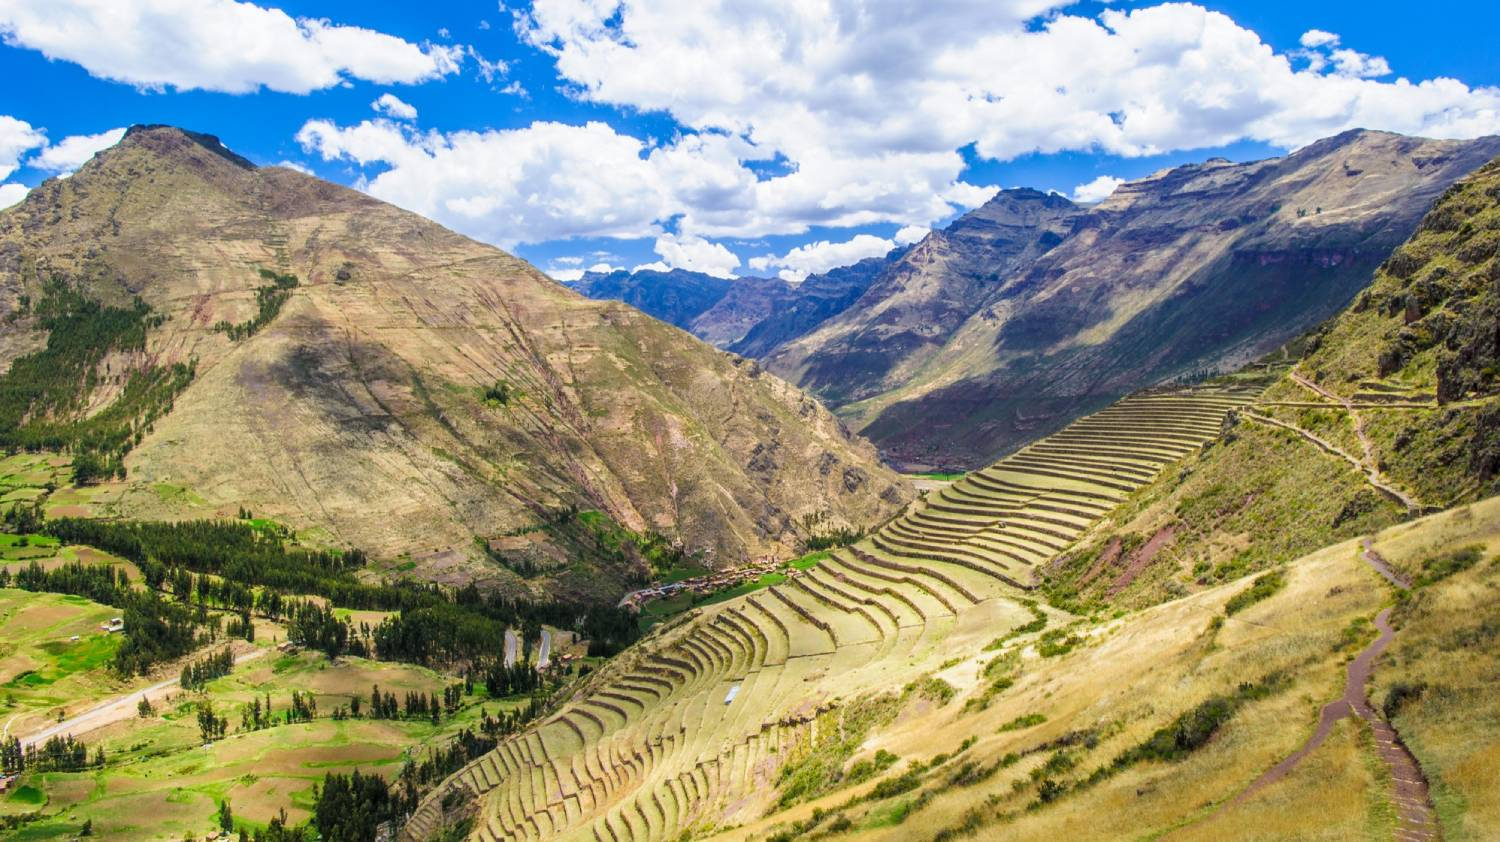 Sacred Valley of the Incas - Things To Do In Cusco